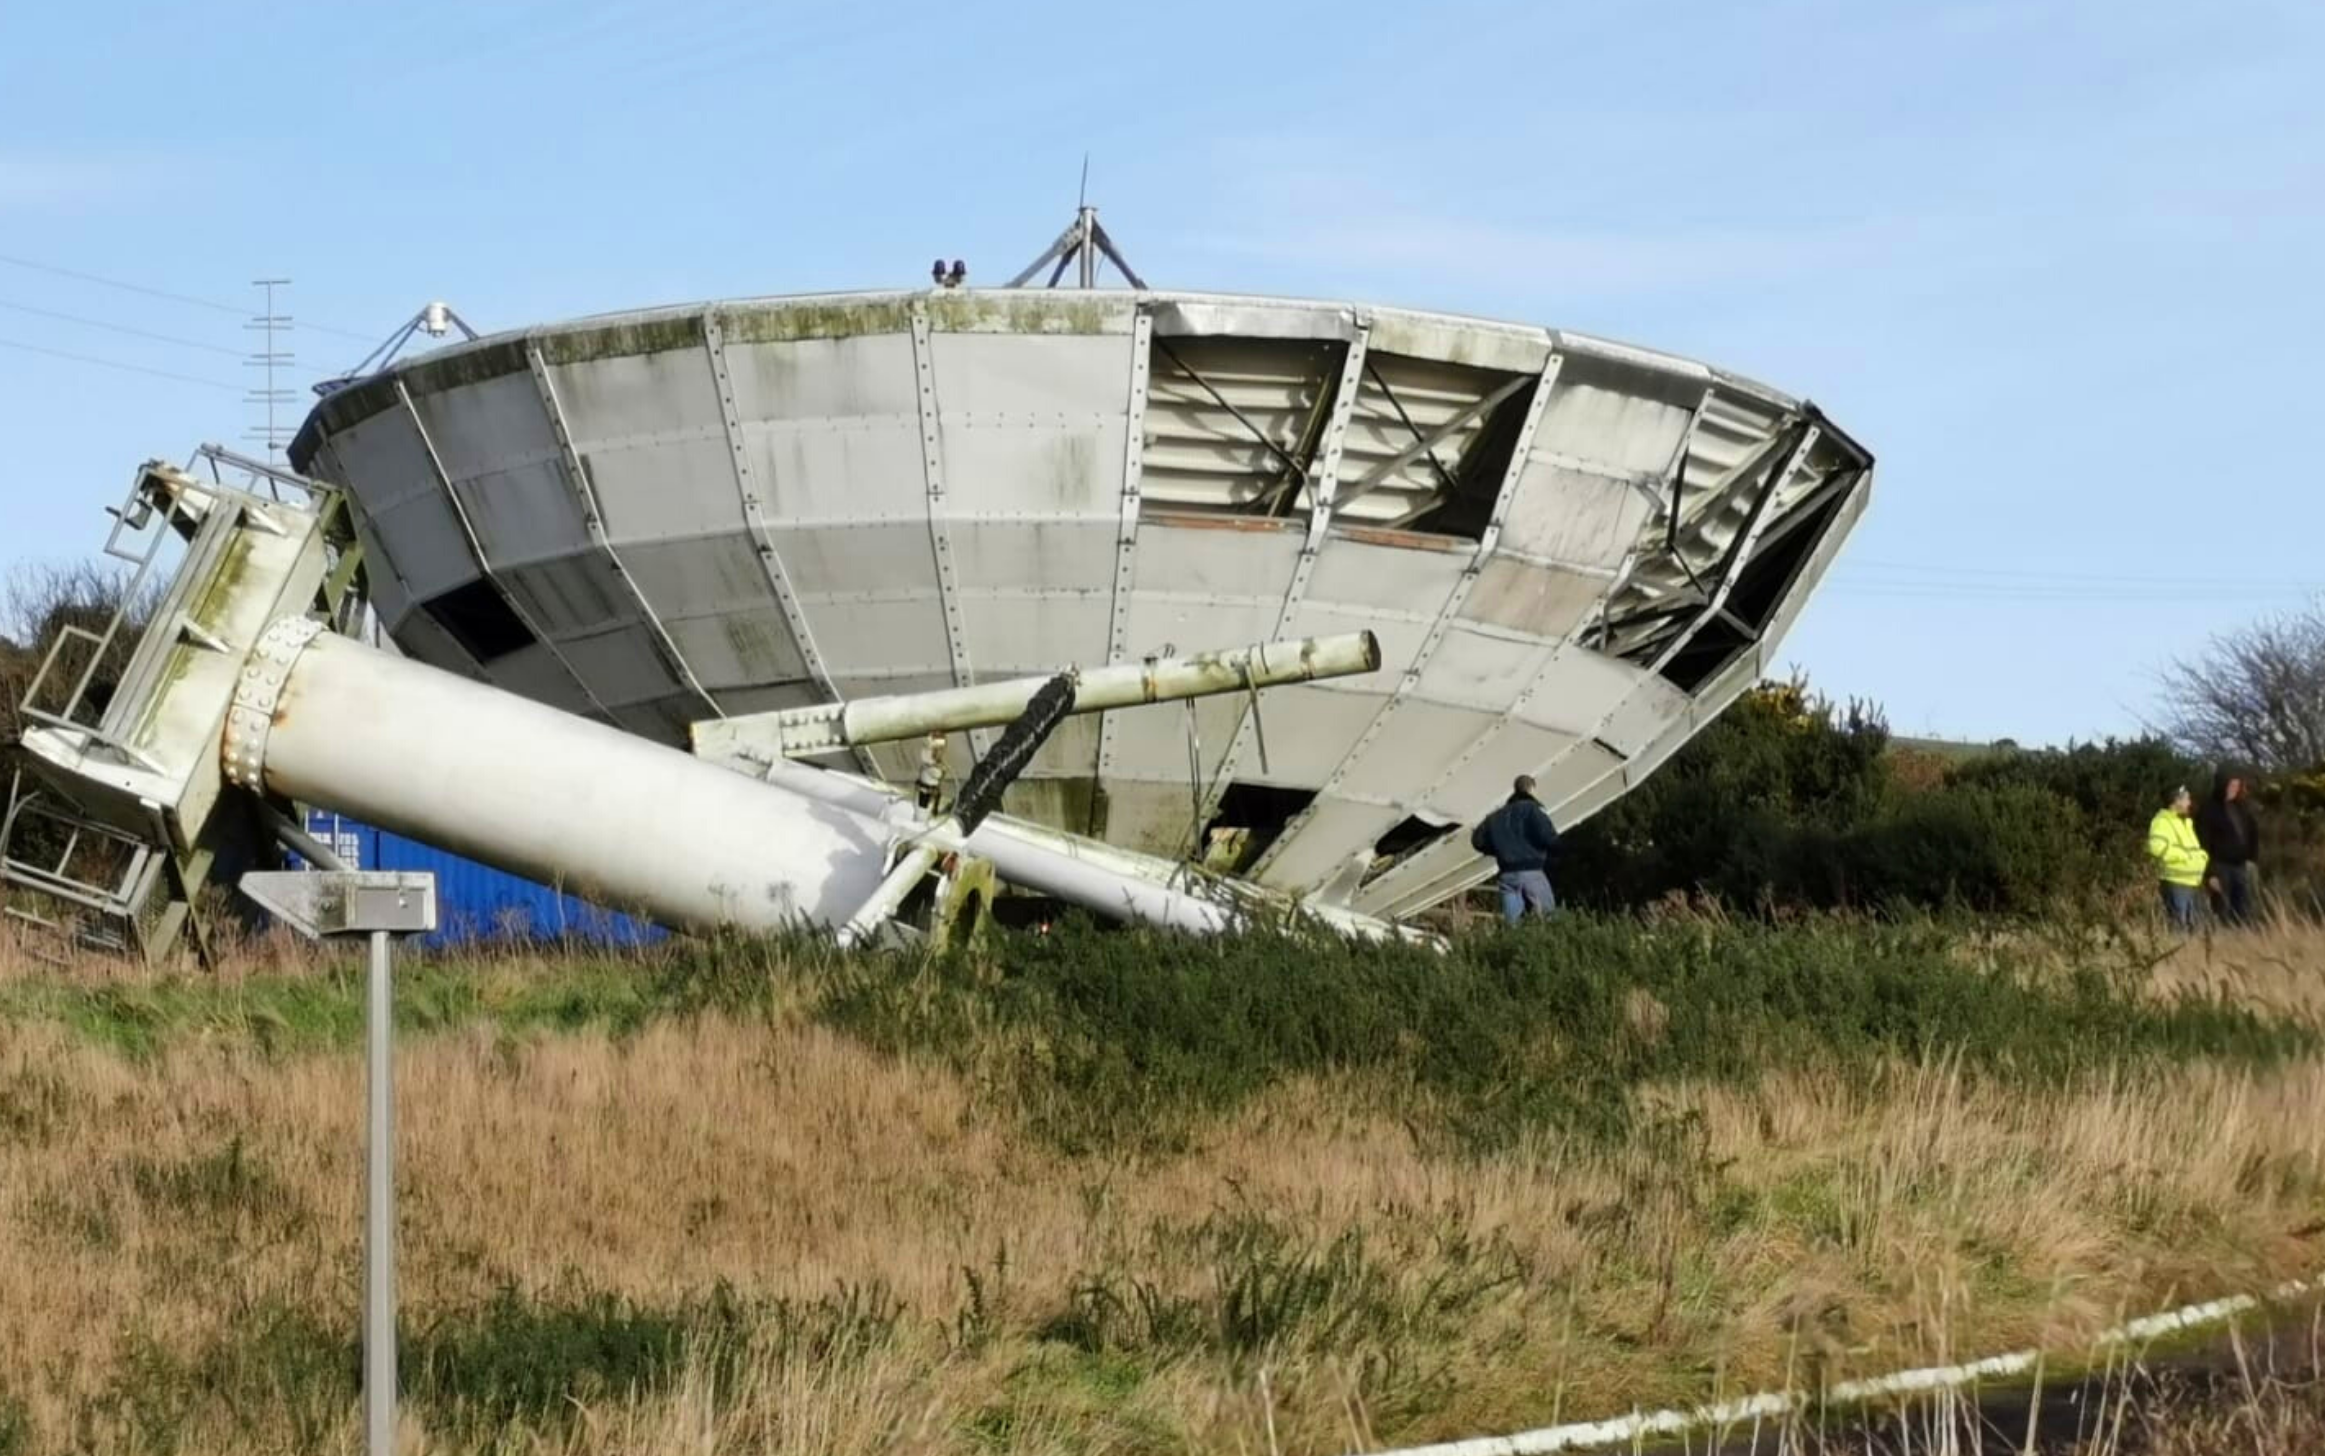 Space Junk: Decommissioned Dish